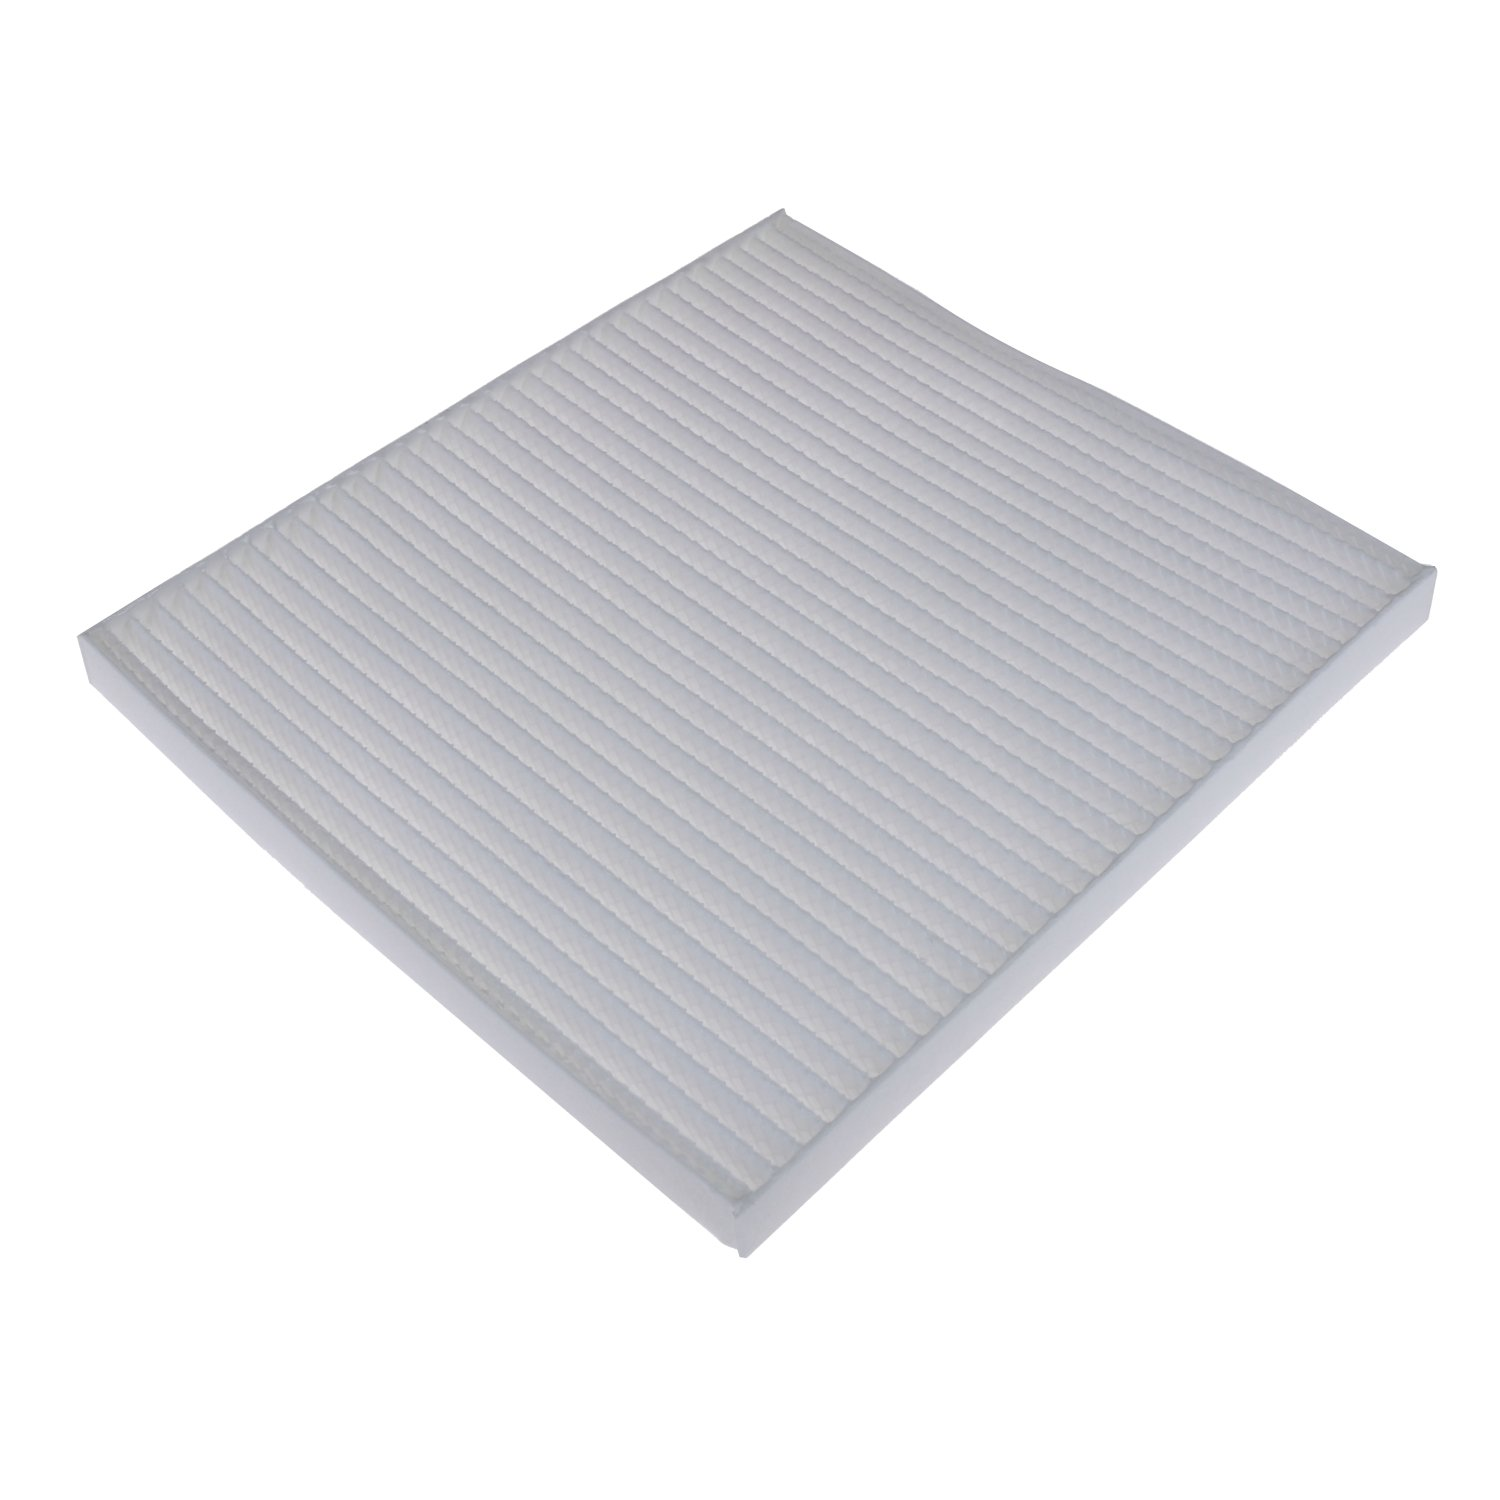 Blue Print ADG02513 Cabin Filter, pack of one